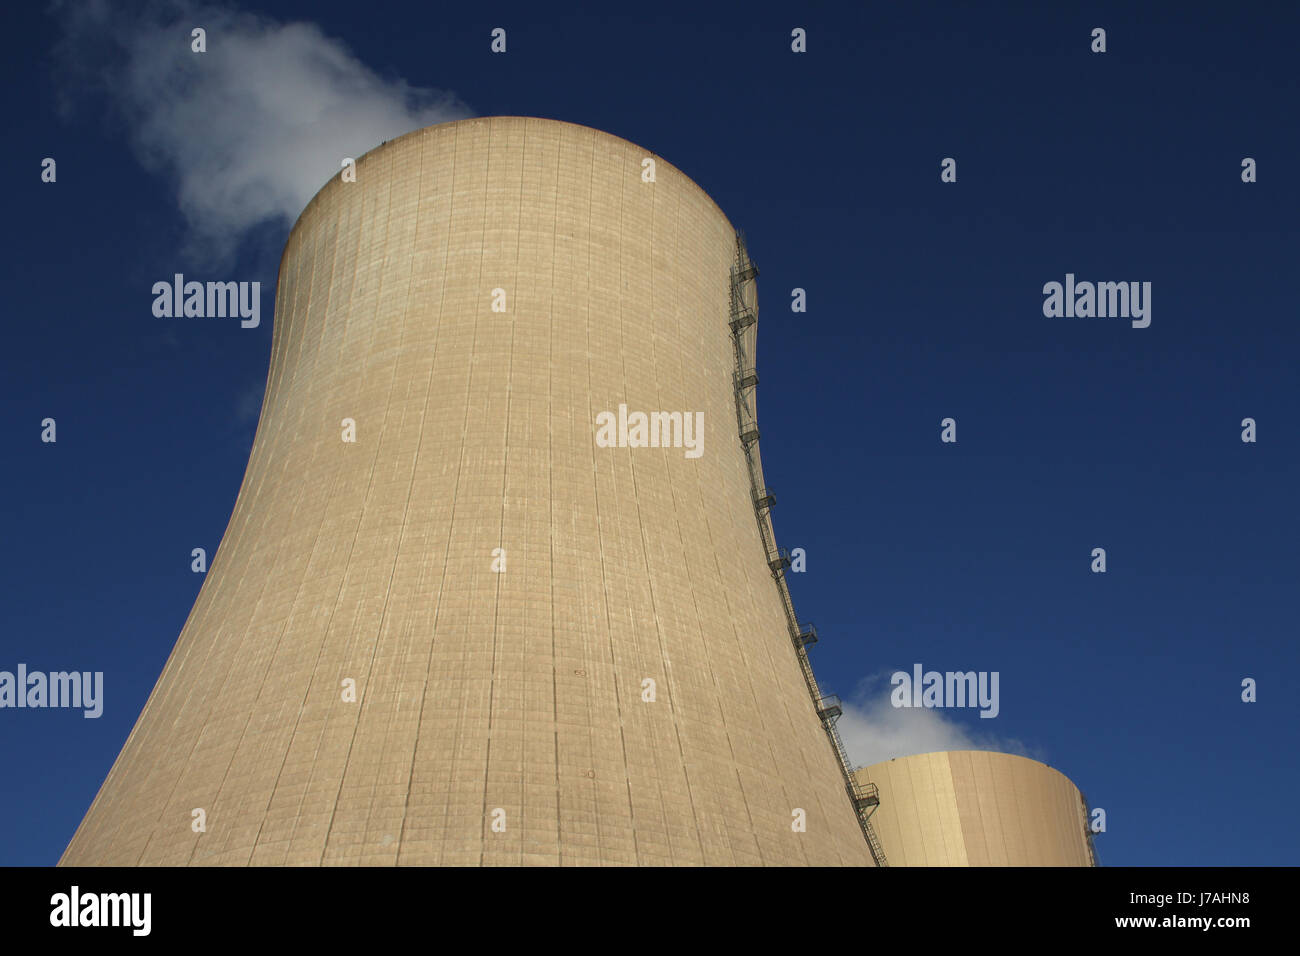 cooling towers - Stock Image